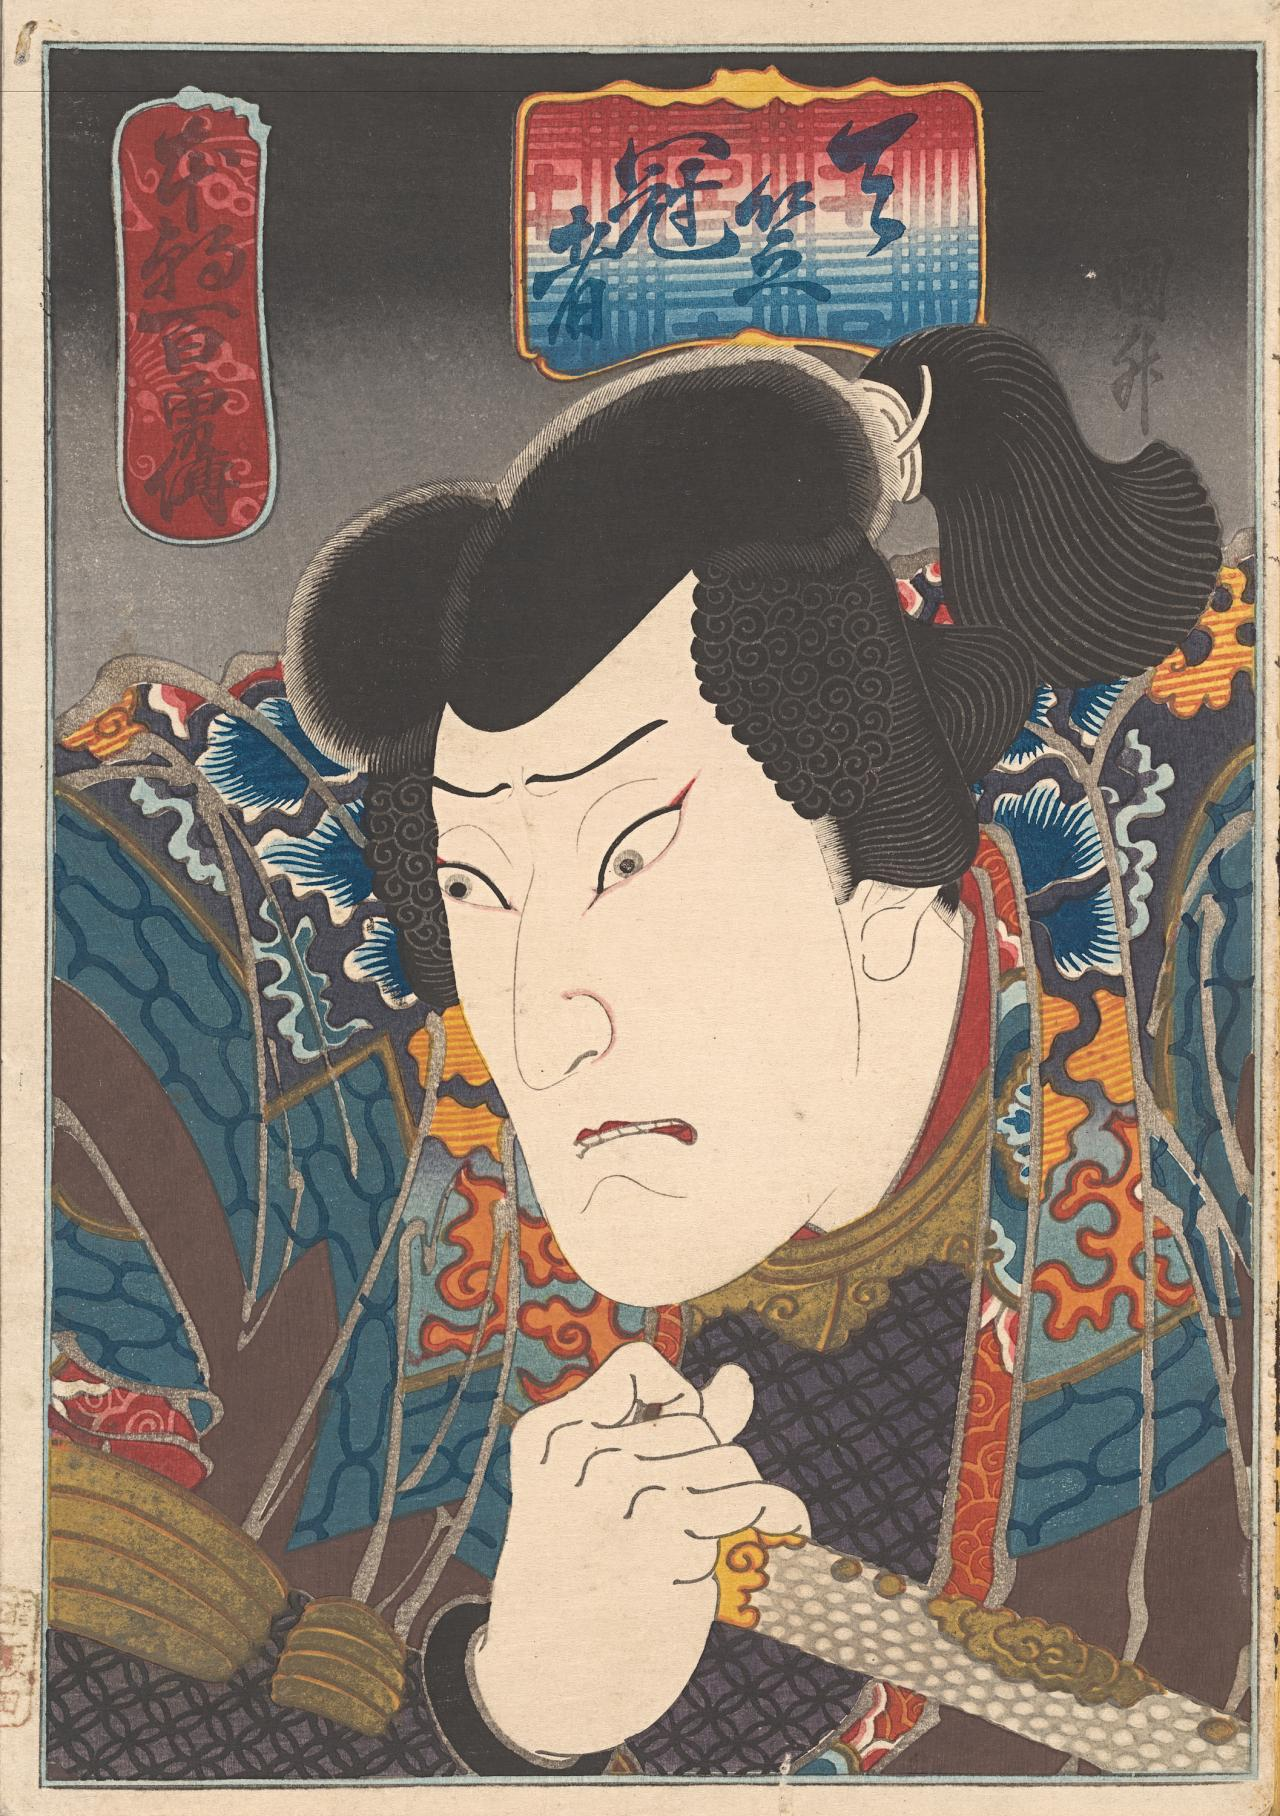 Portraits of kabuki actors